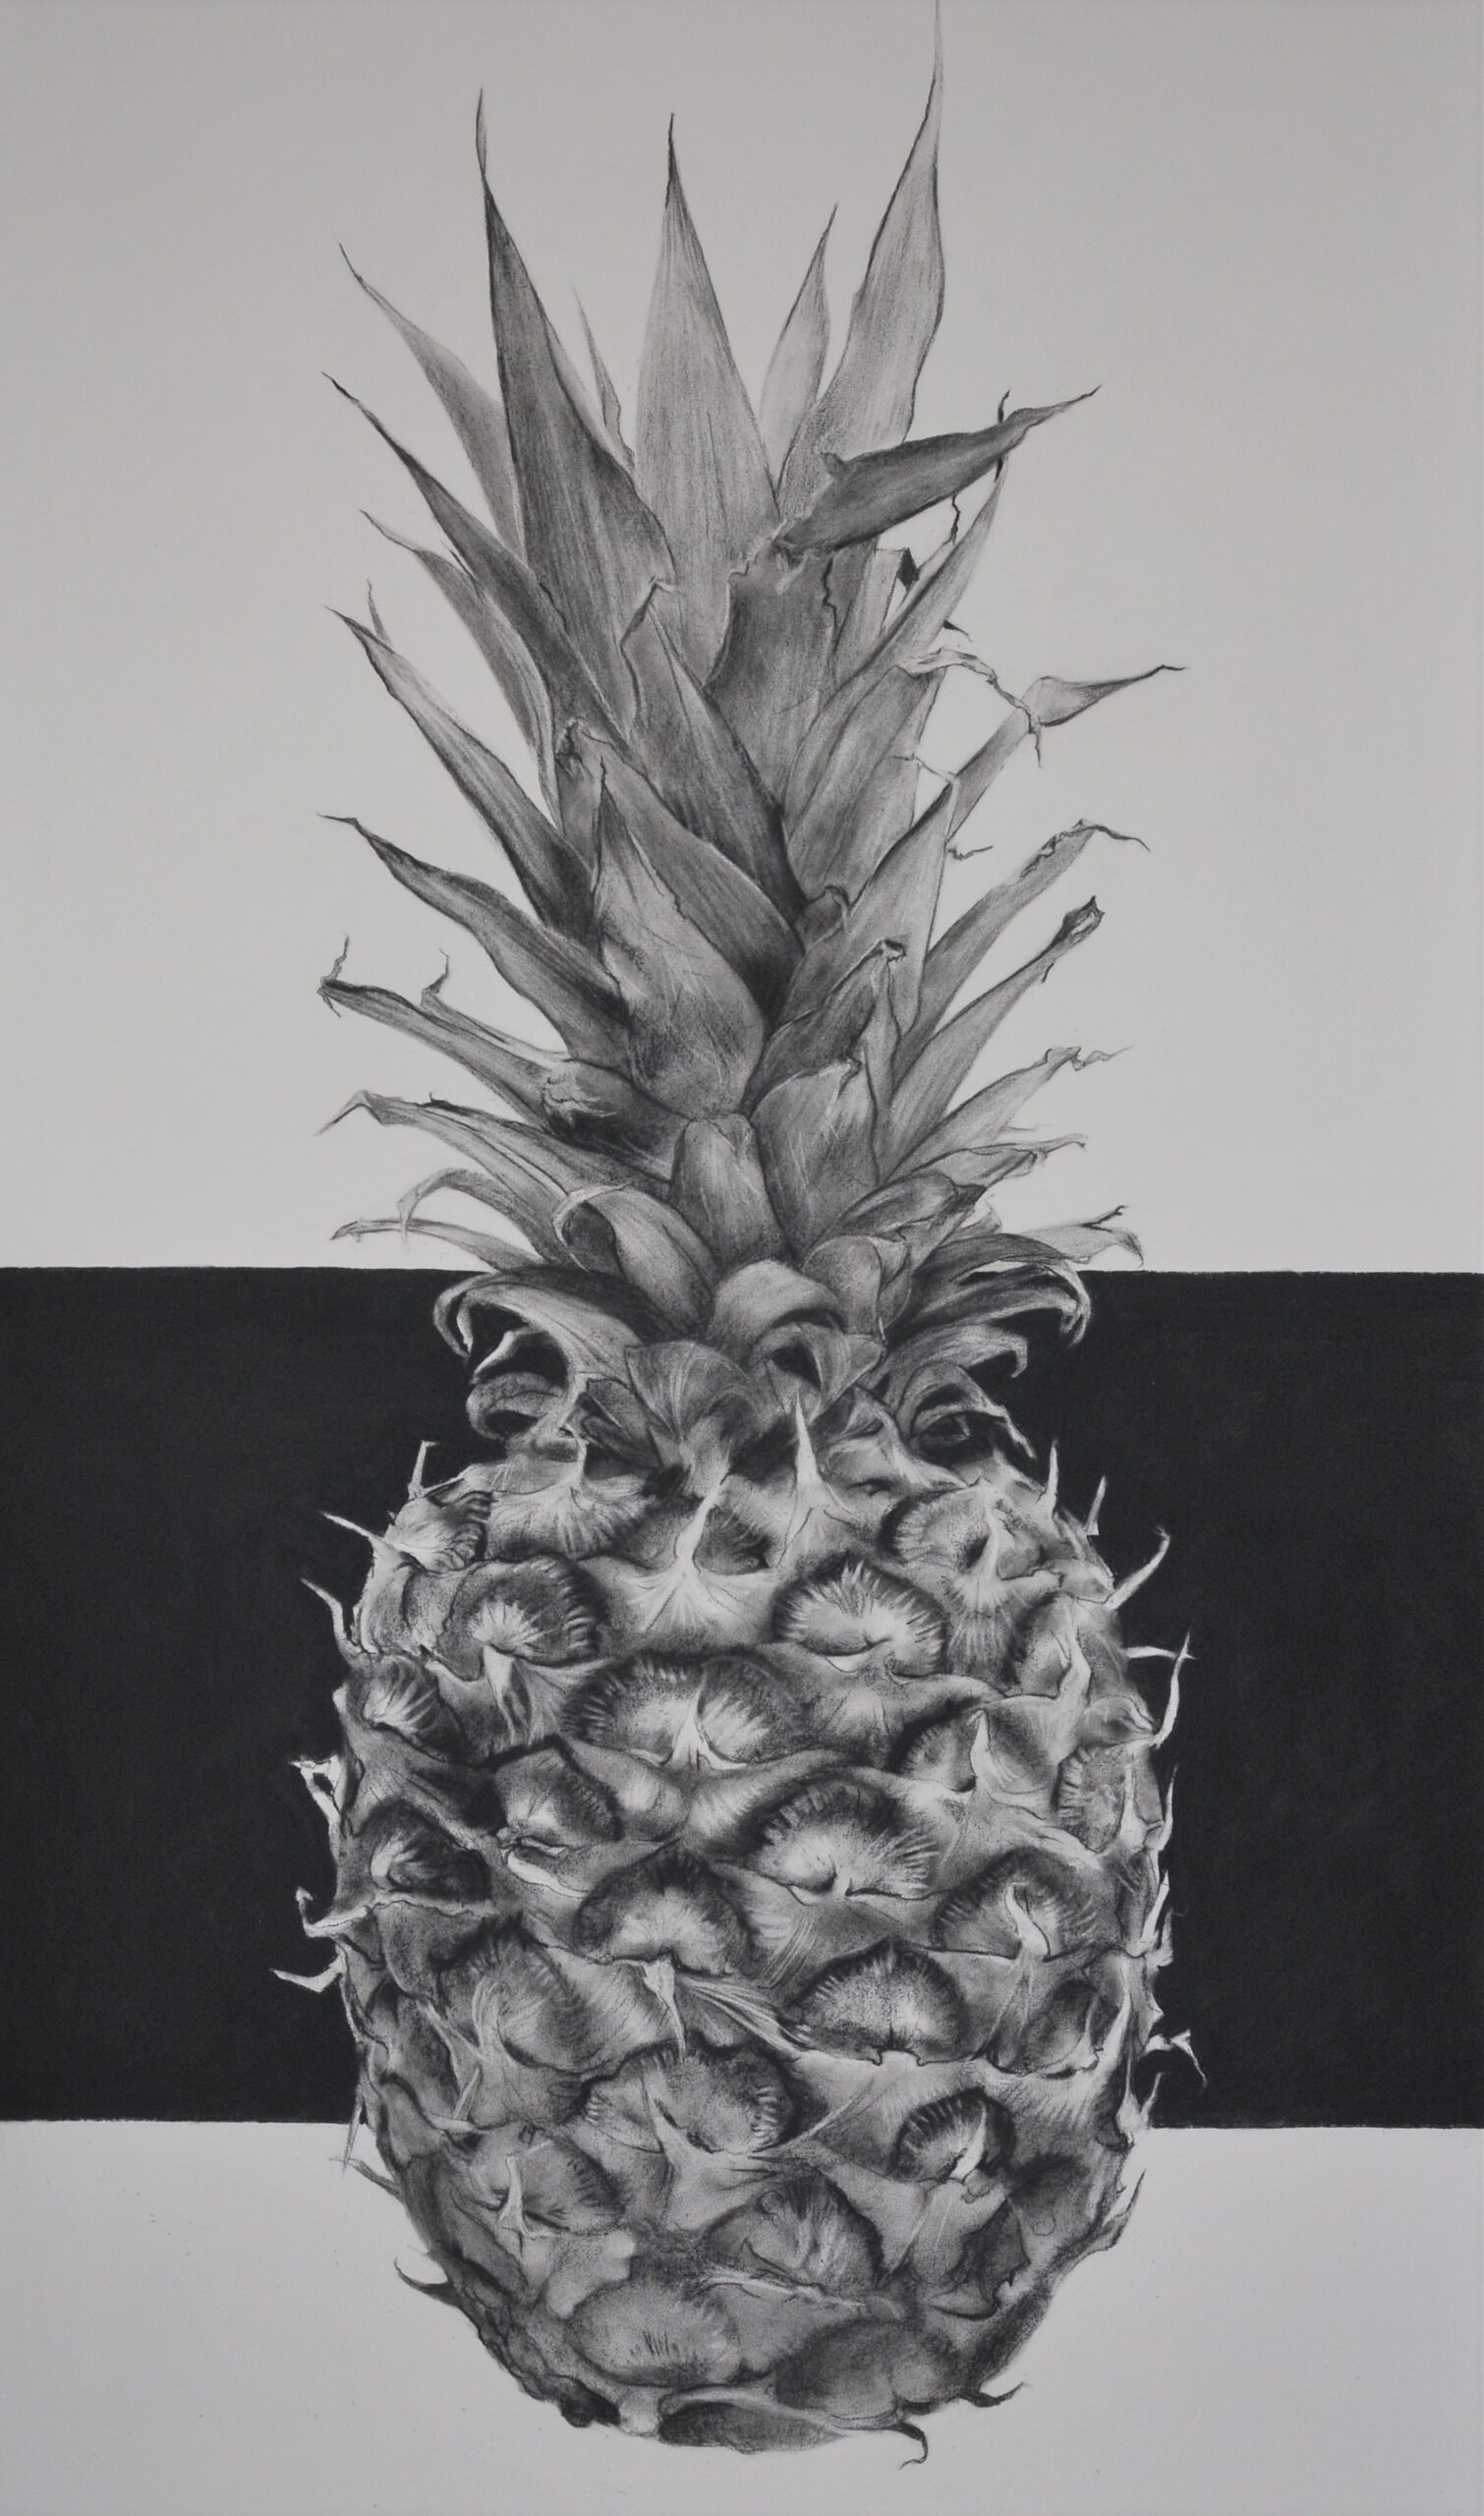 Charcoal drawing of a pineapple